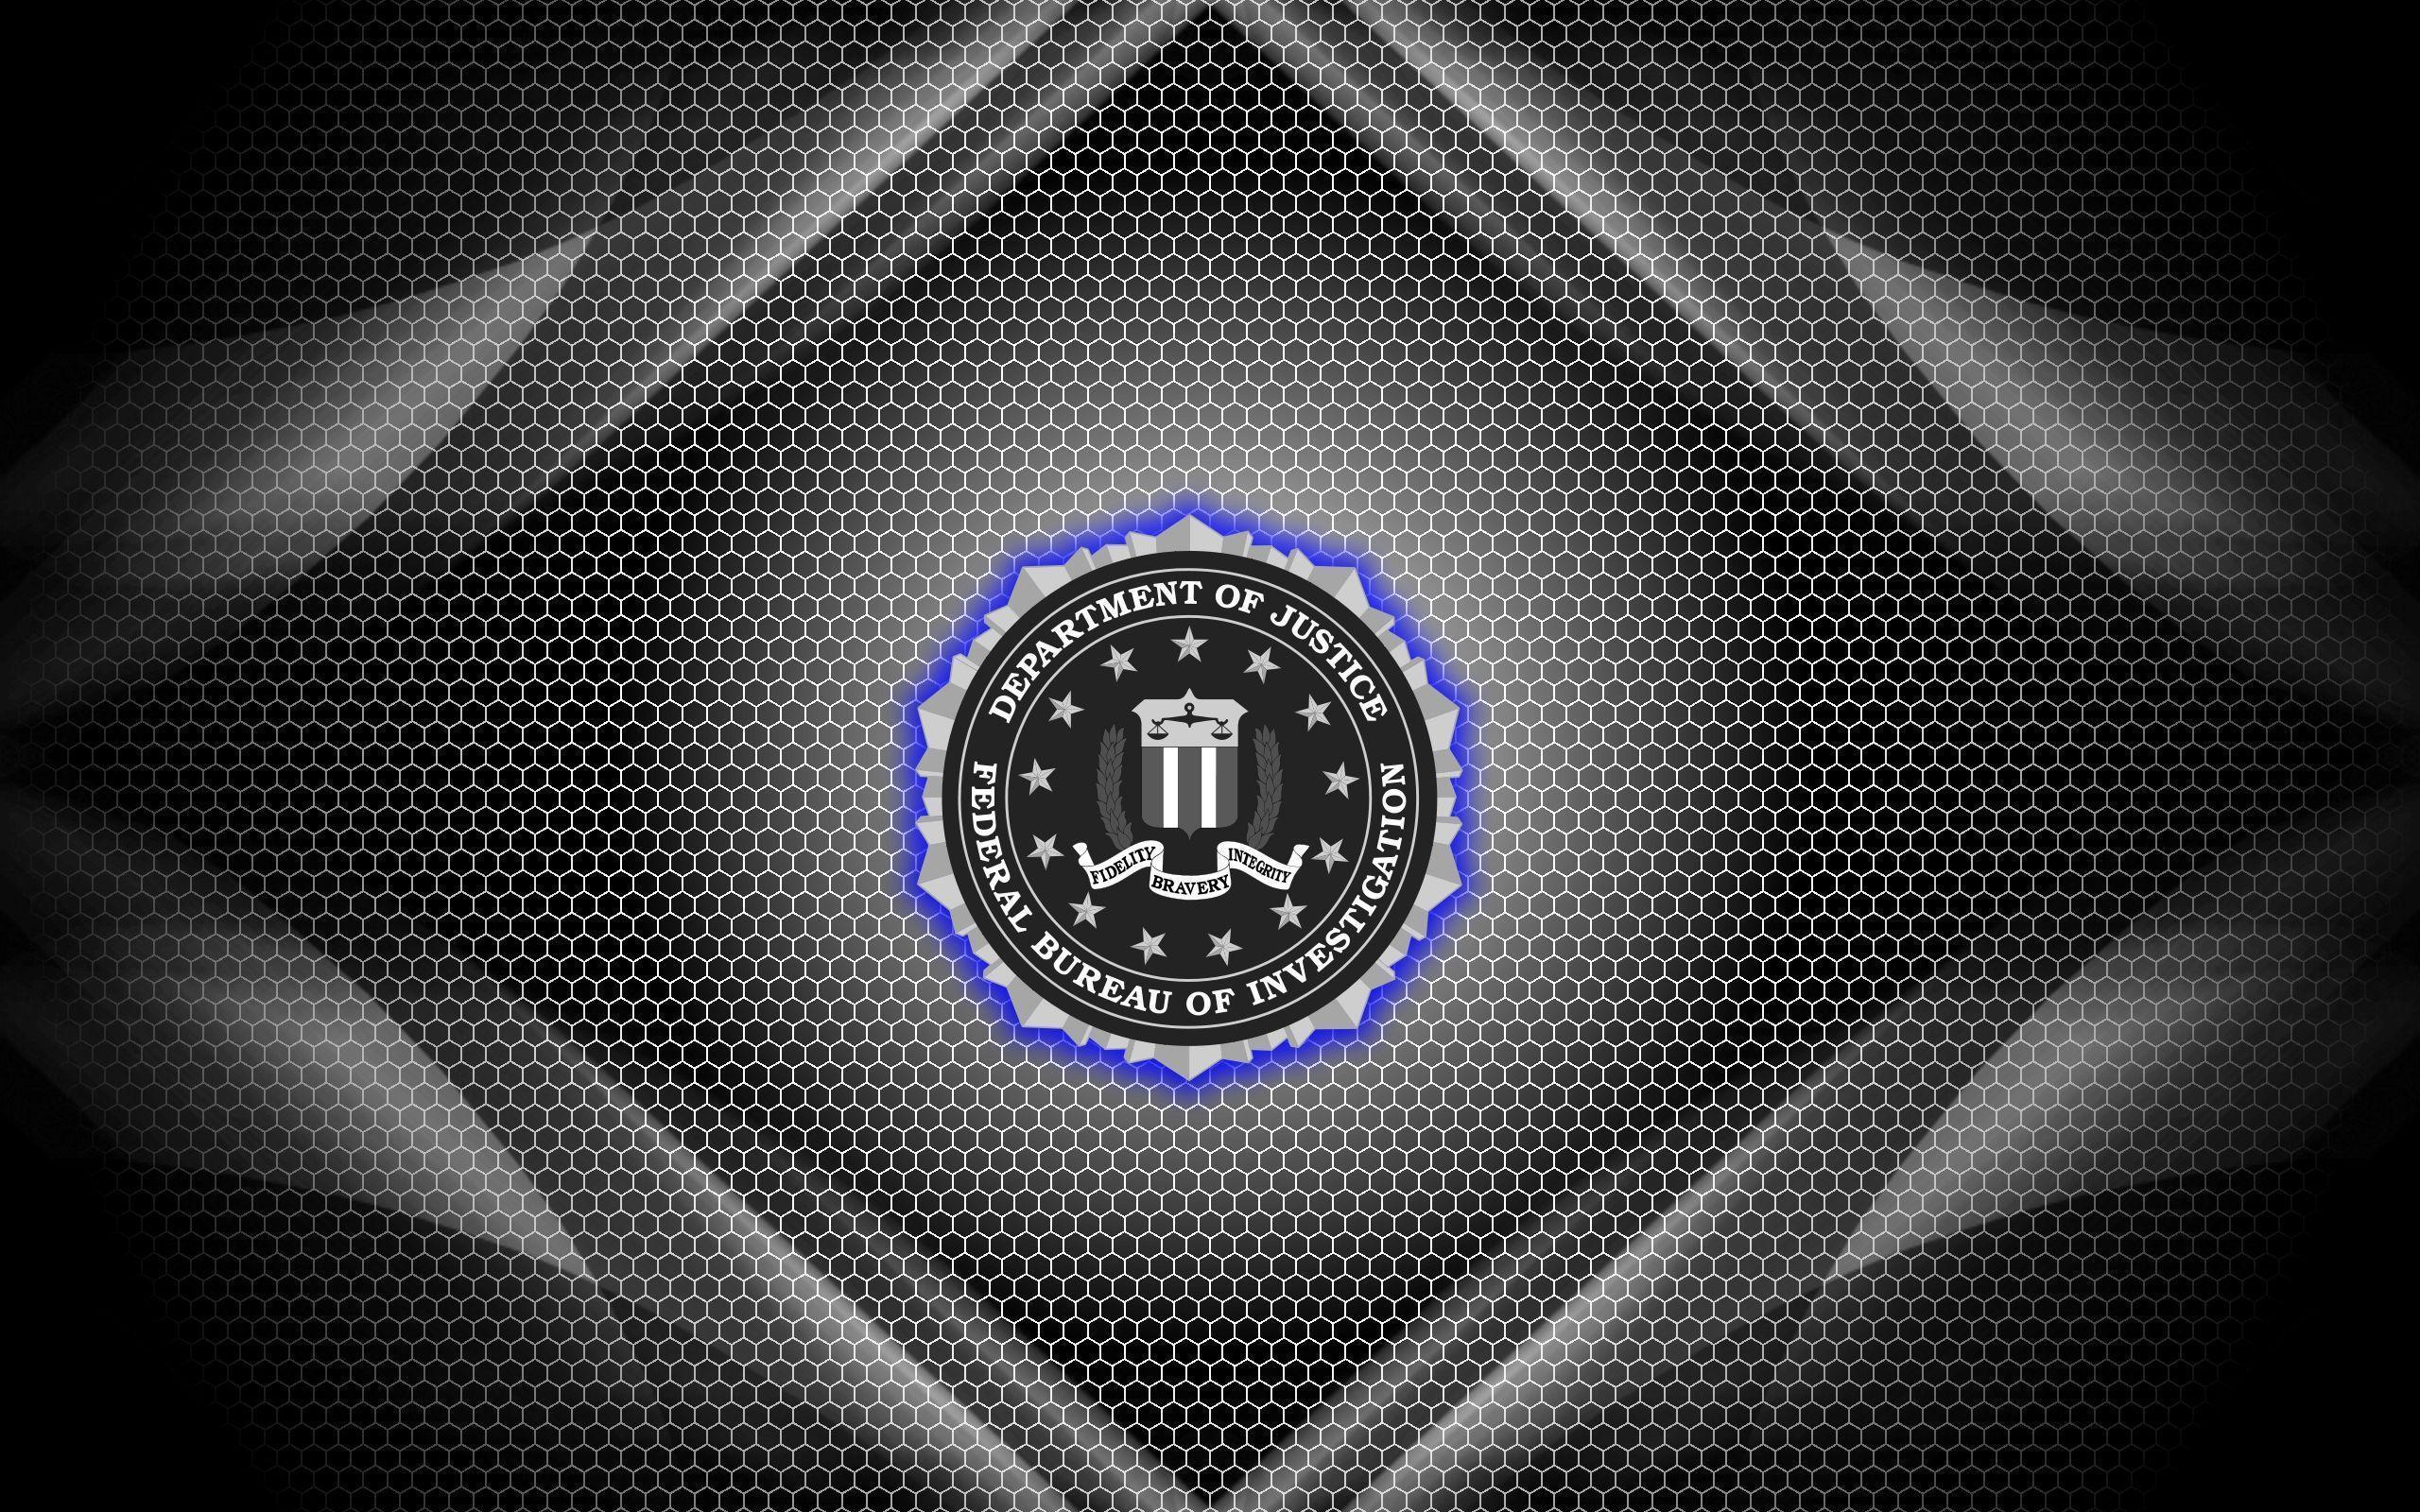 Fbi Logo Wallpaper - WallpaperSafari